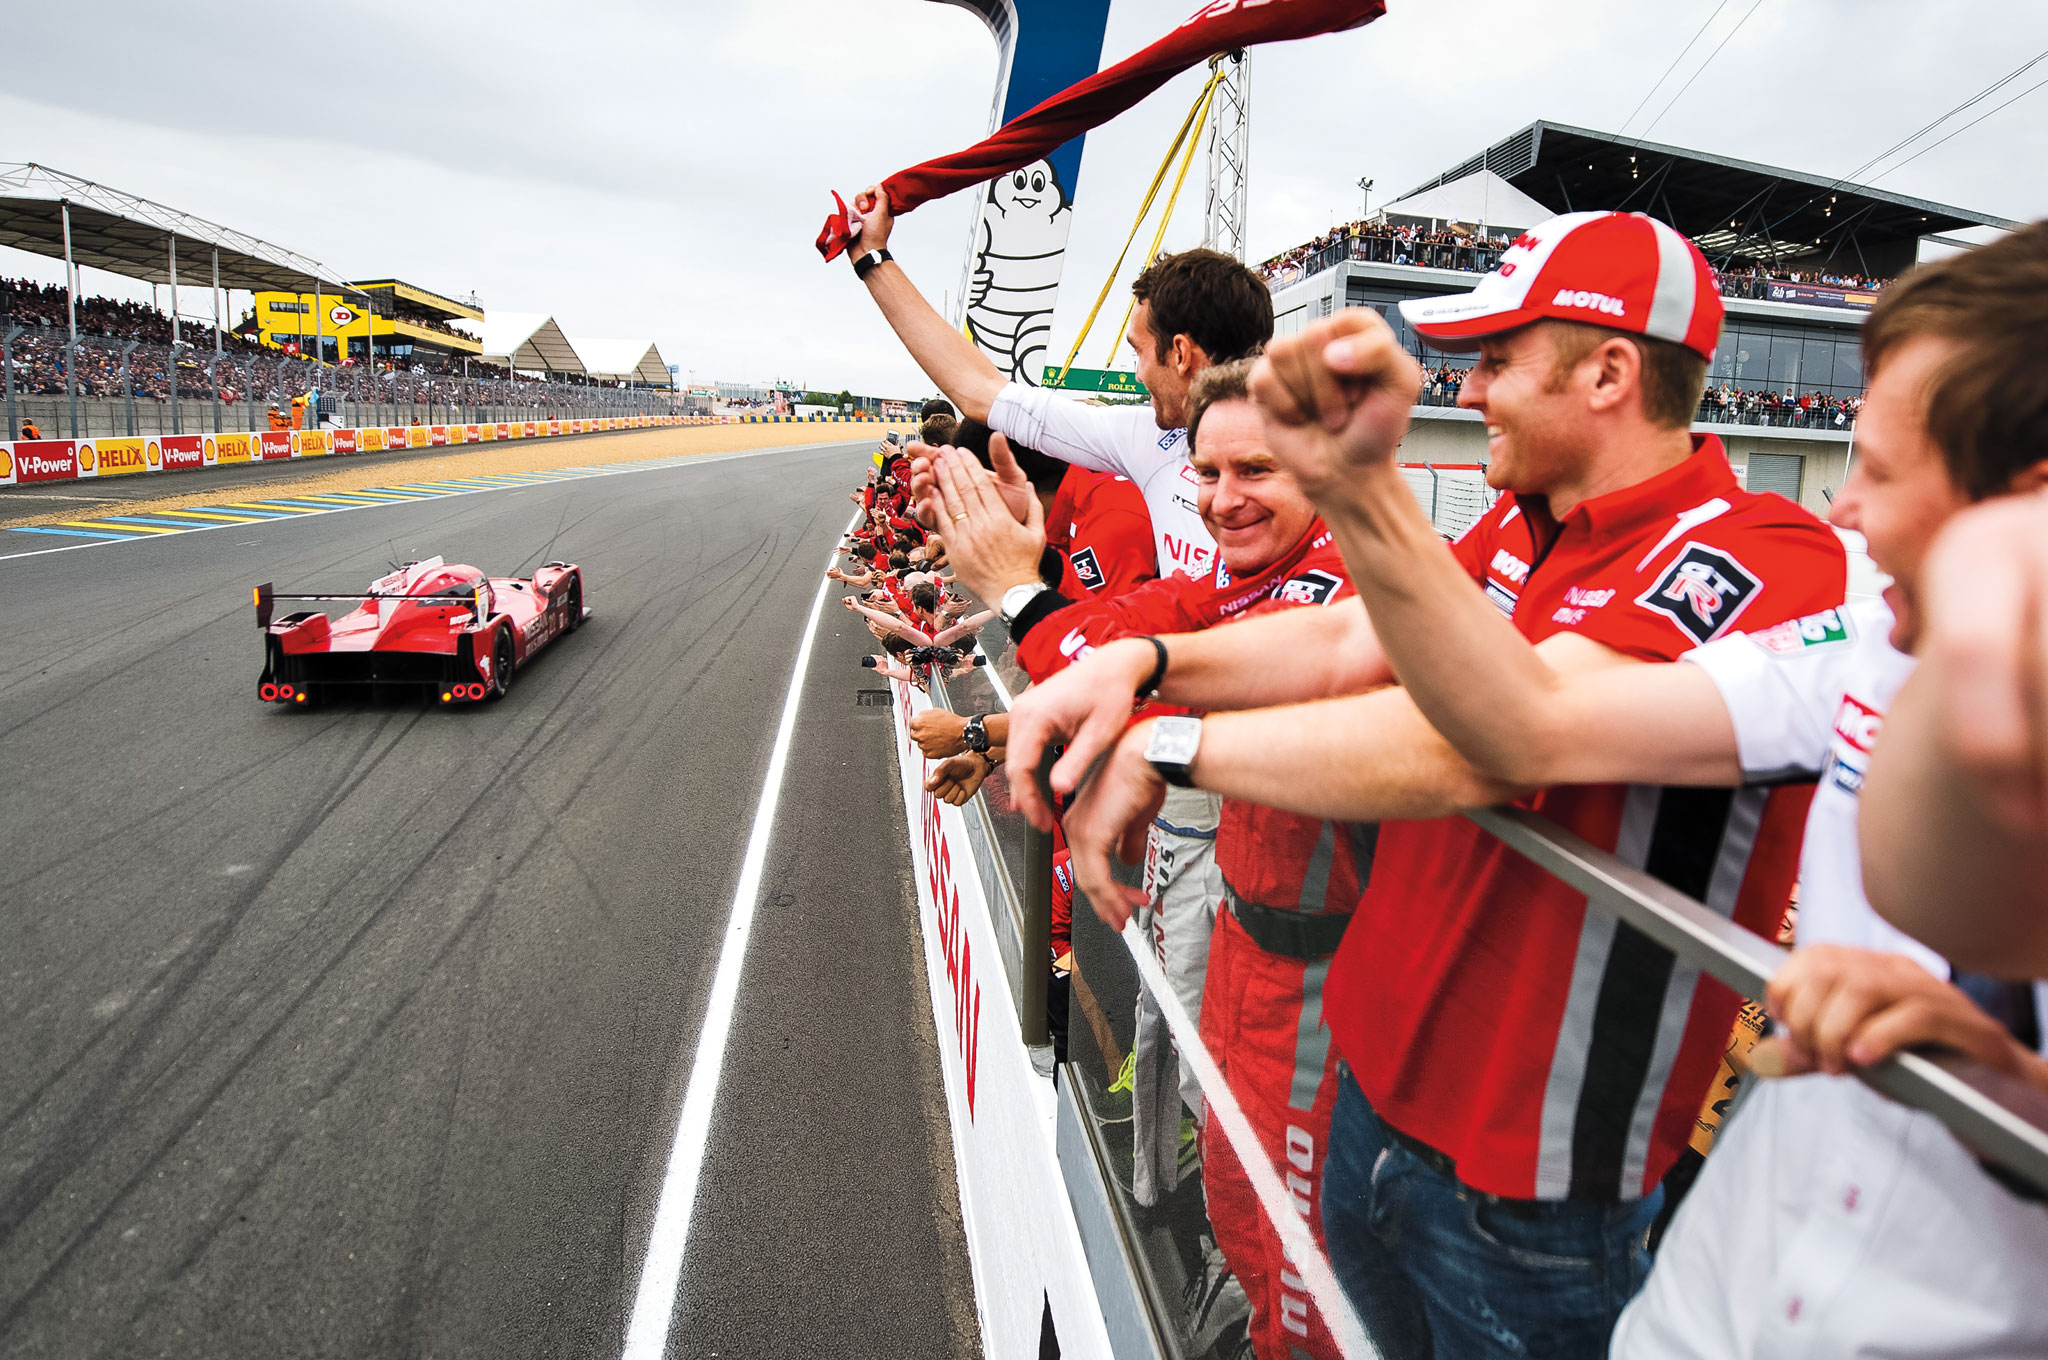 The Nissan team cheers after its  No. 22 GT-R LM NISMO, one of its three prototype cars at Le Mans, sees the checkered flag.